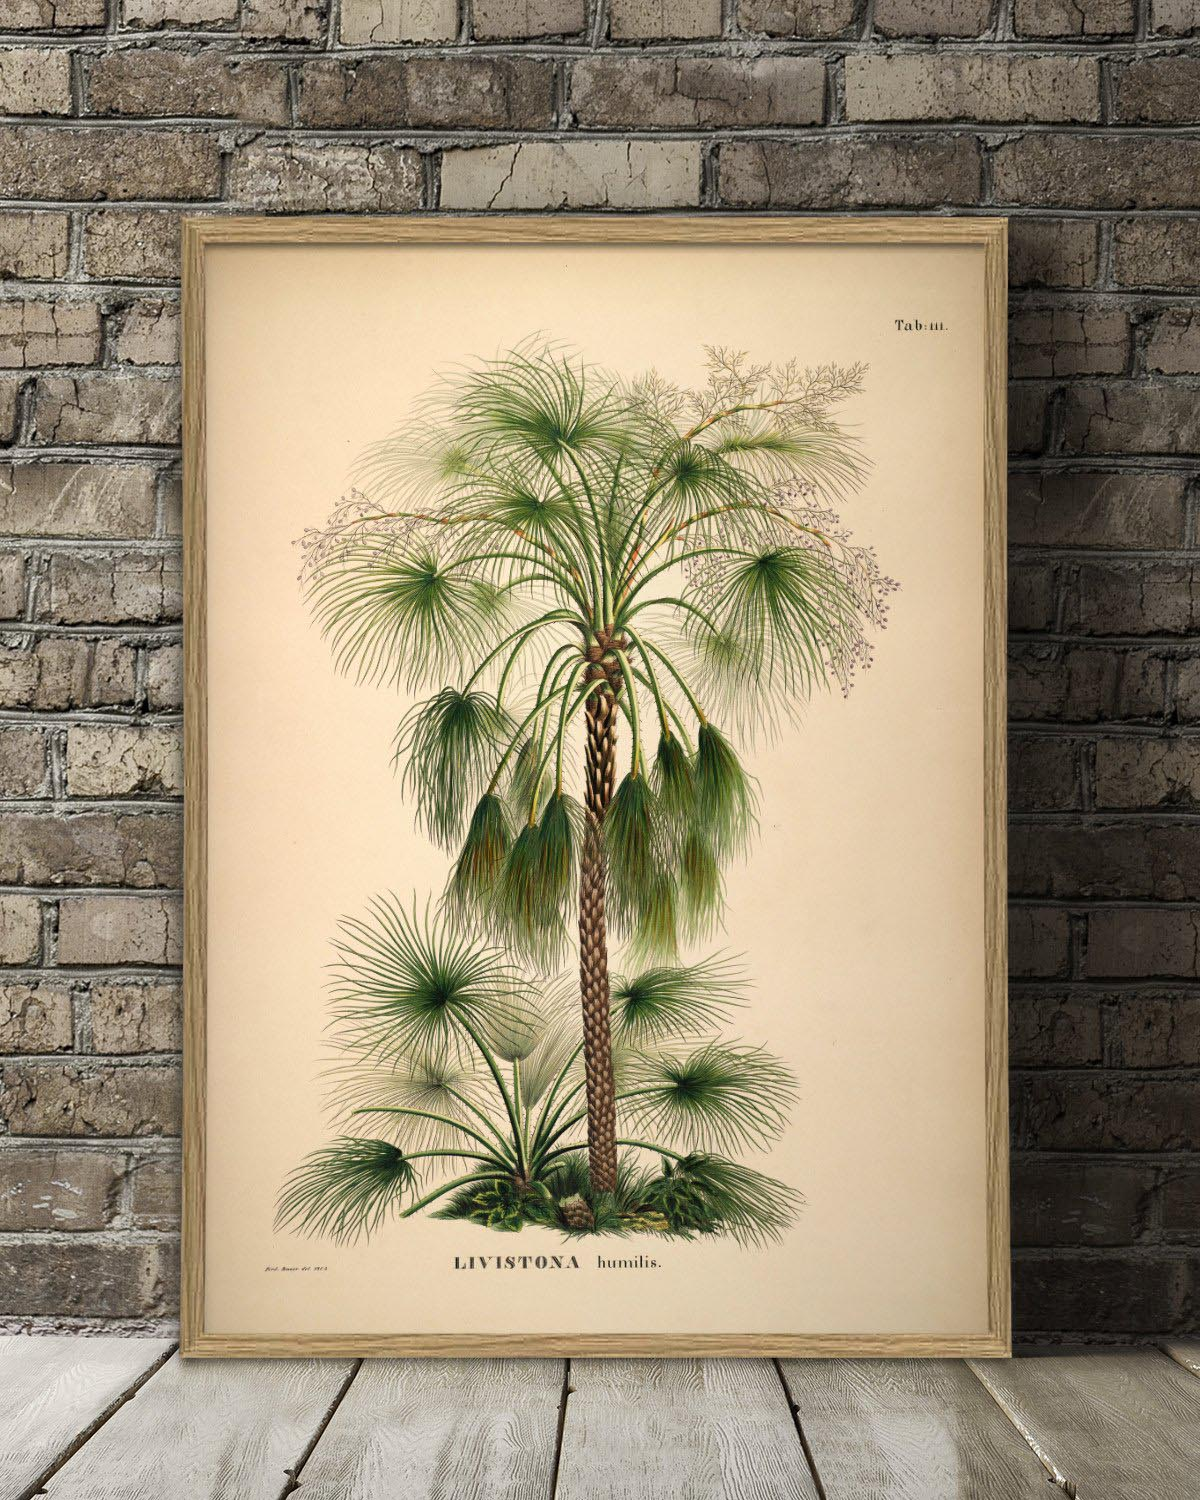 This botanical palm print is possible to get from 30 x 40 cm to at huge poster in size 112 x 158 cm. It is from the poster company the Dybdahl Co.